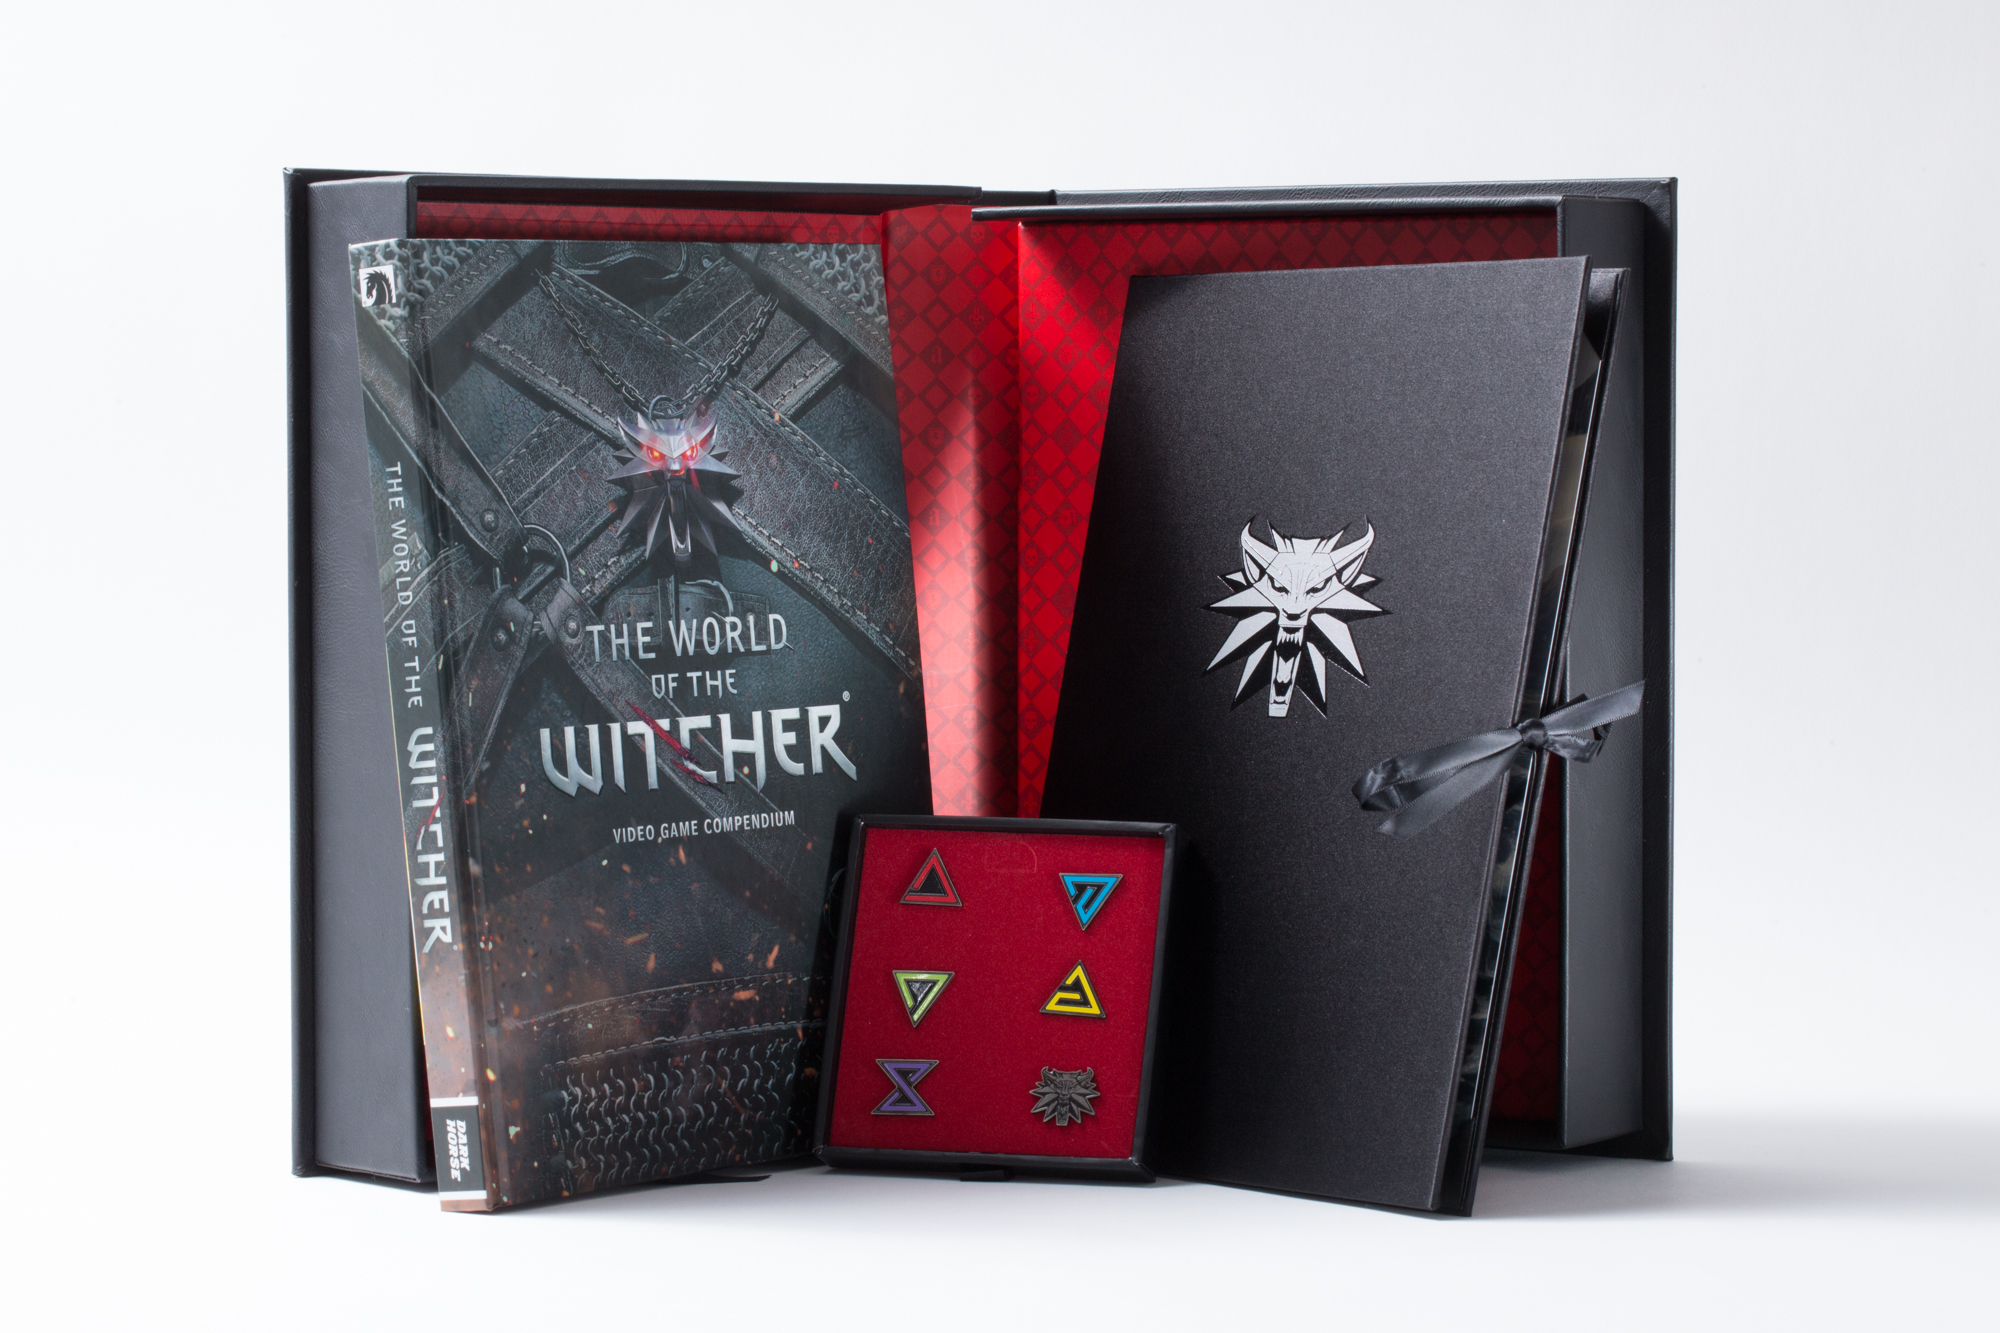 This is what a $100 Witcher lore compendium looks like